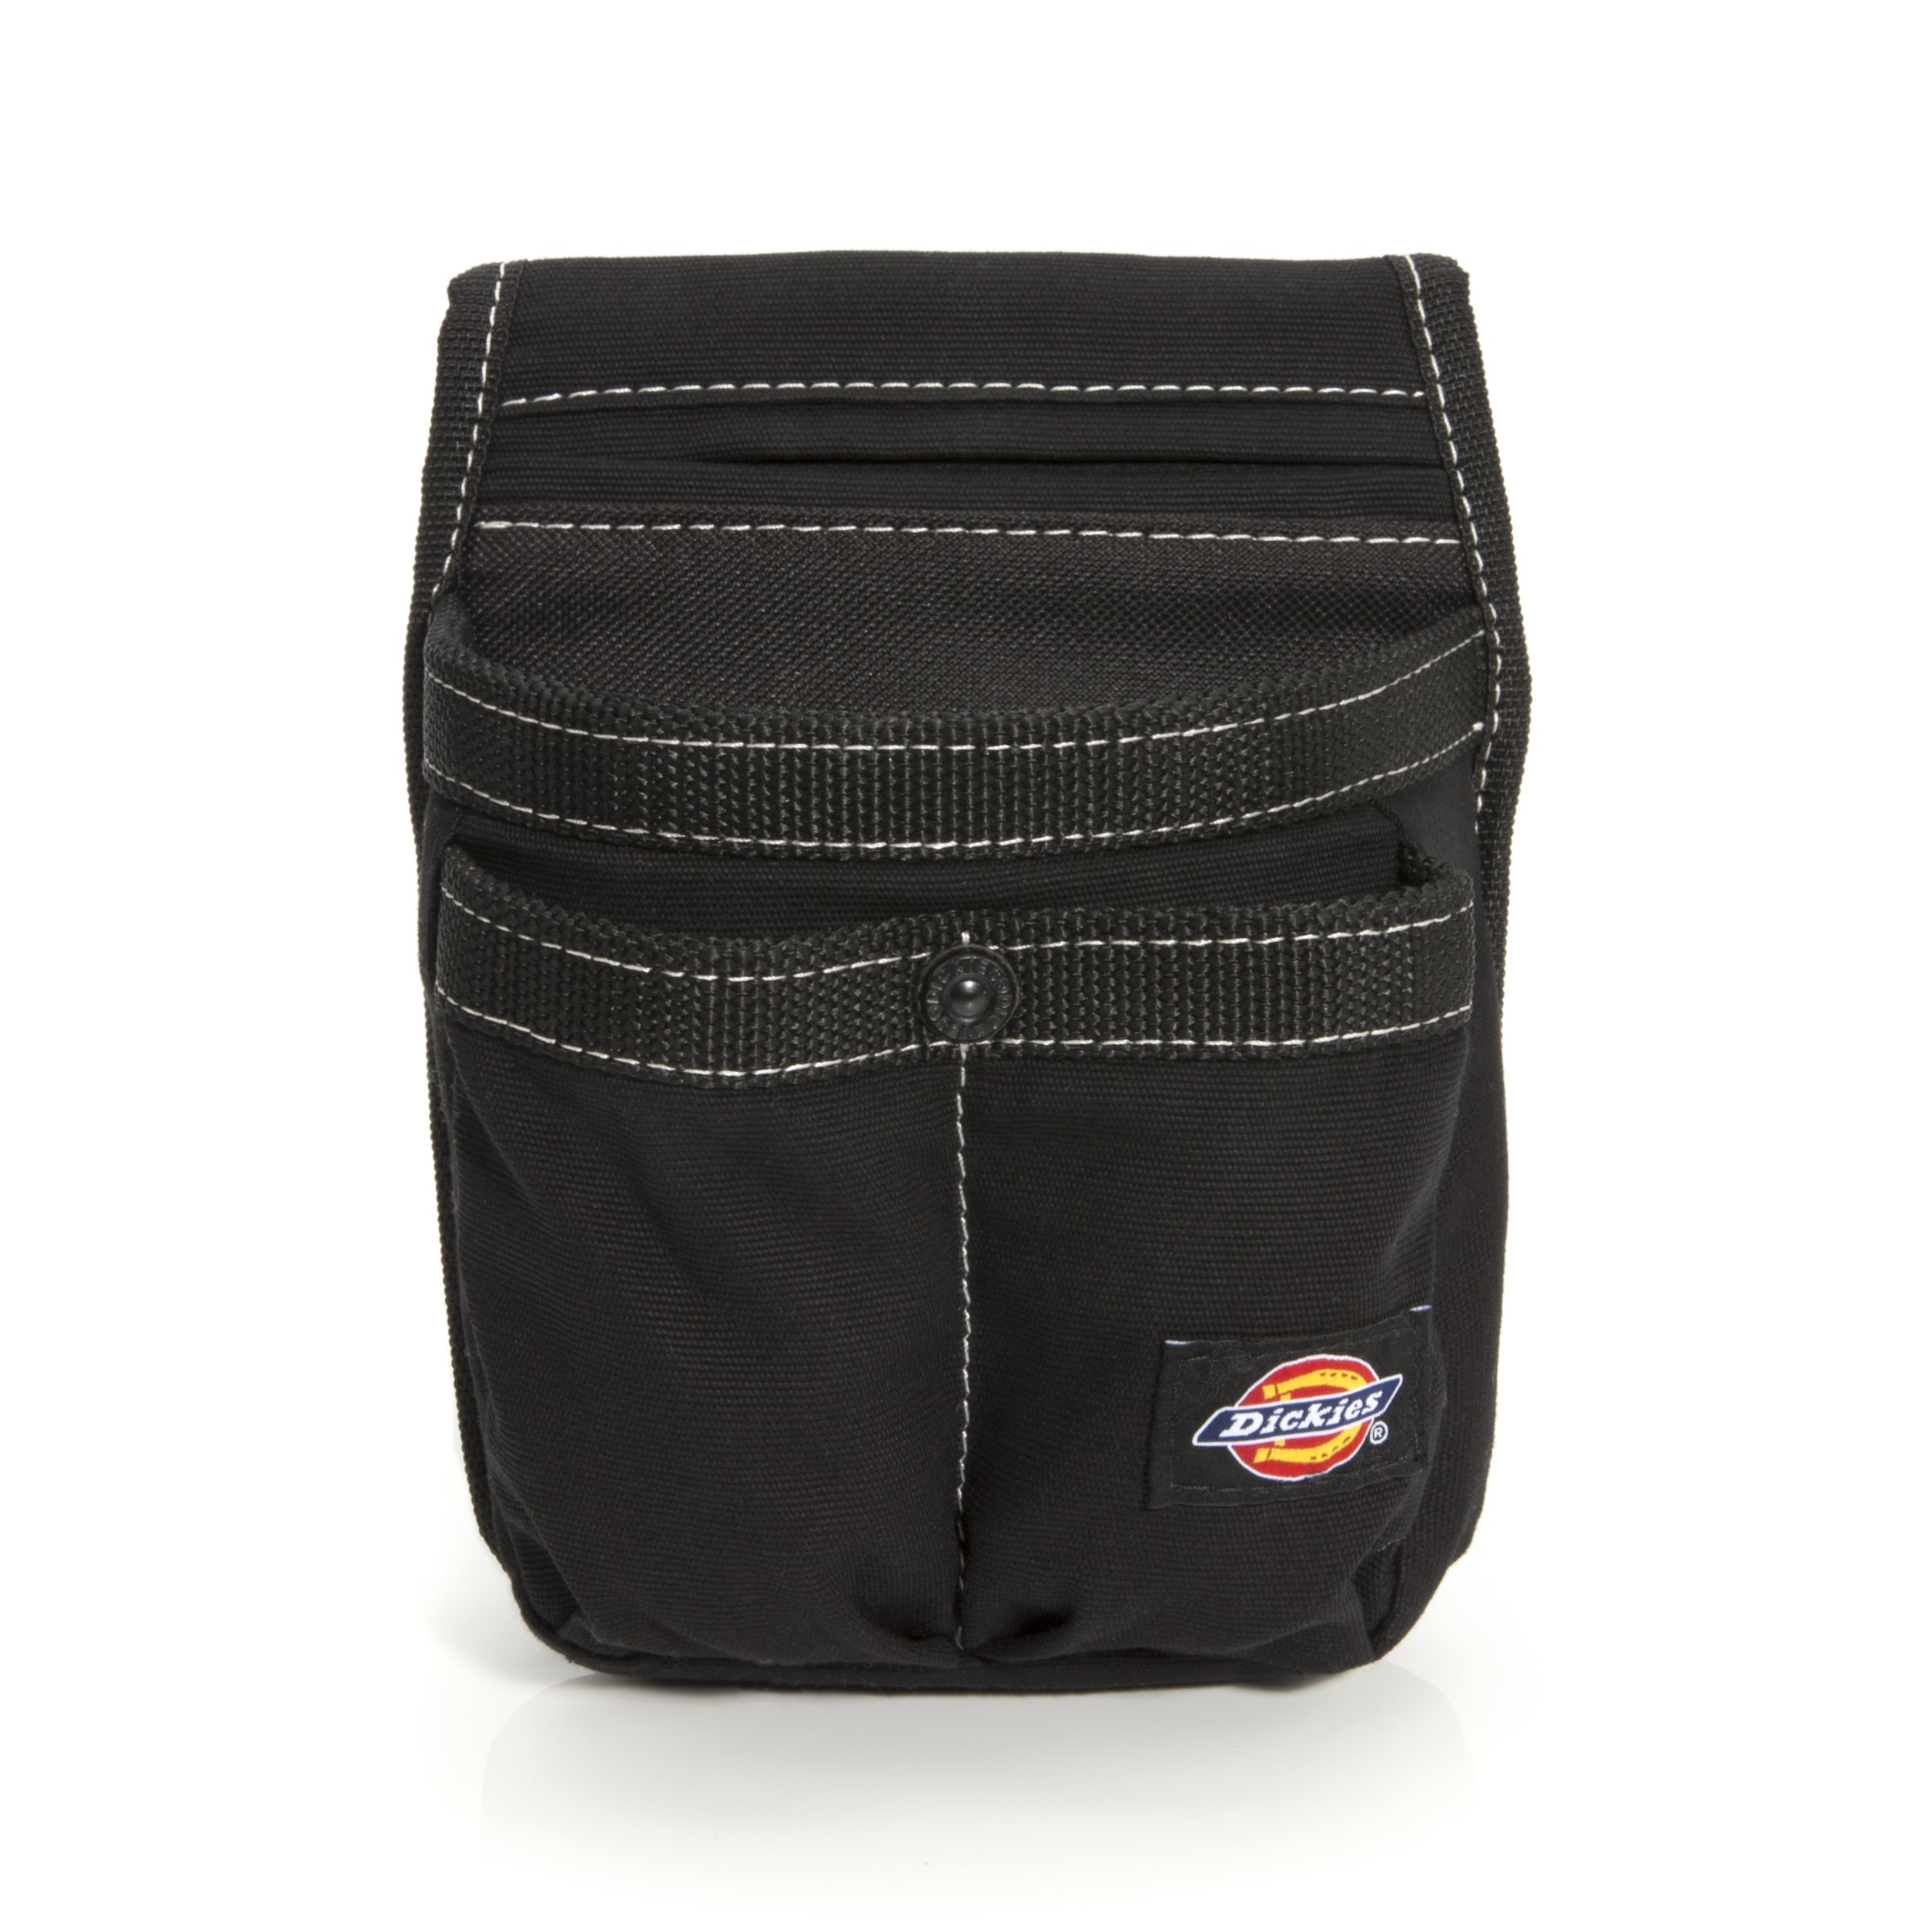 Dickies Work Gear 57059 Black Tool and Cell Phone Holder